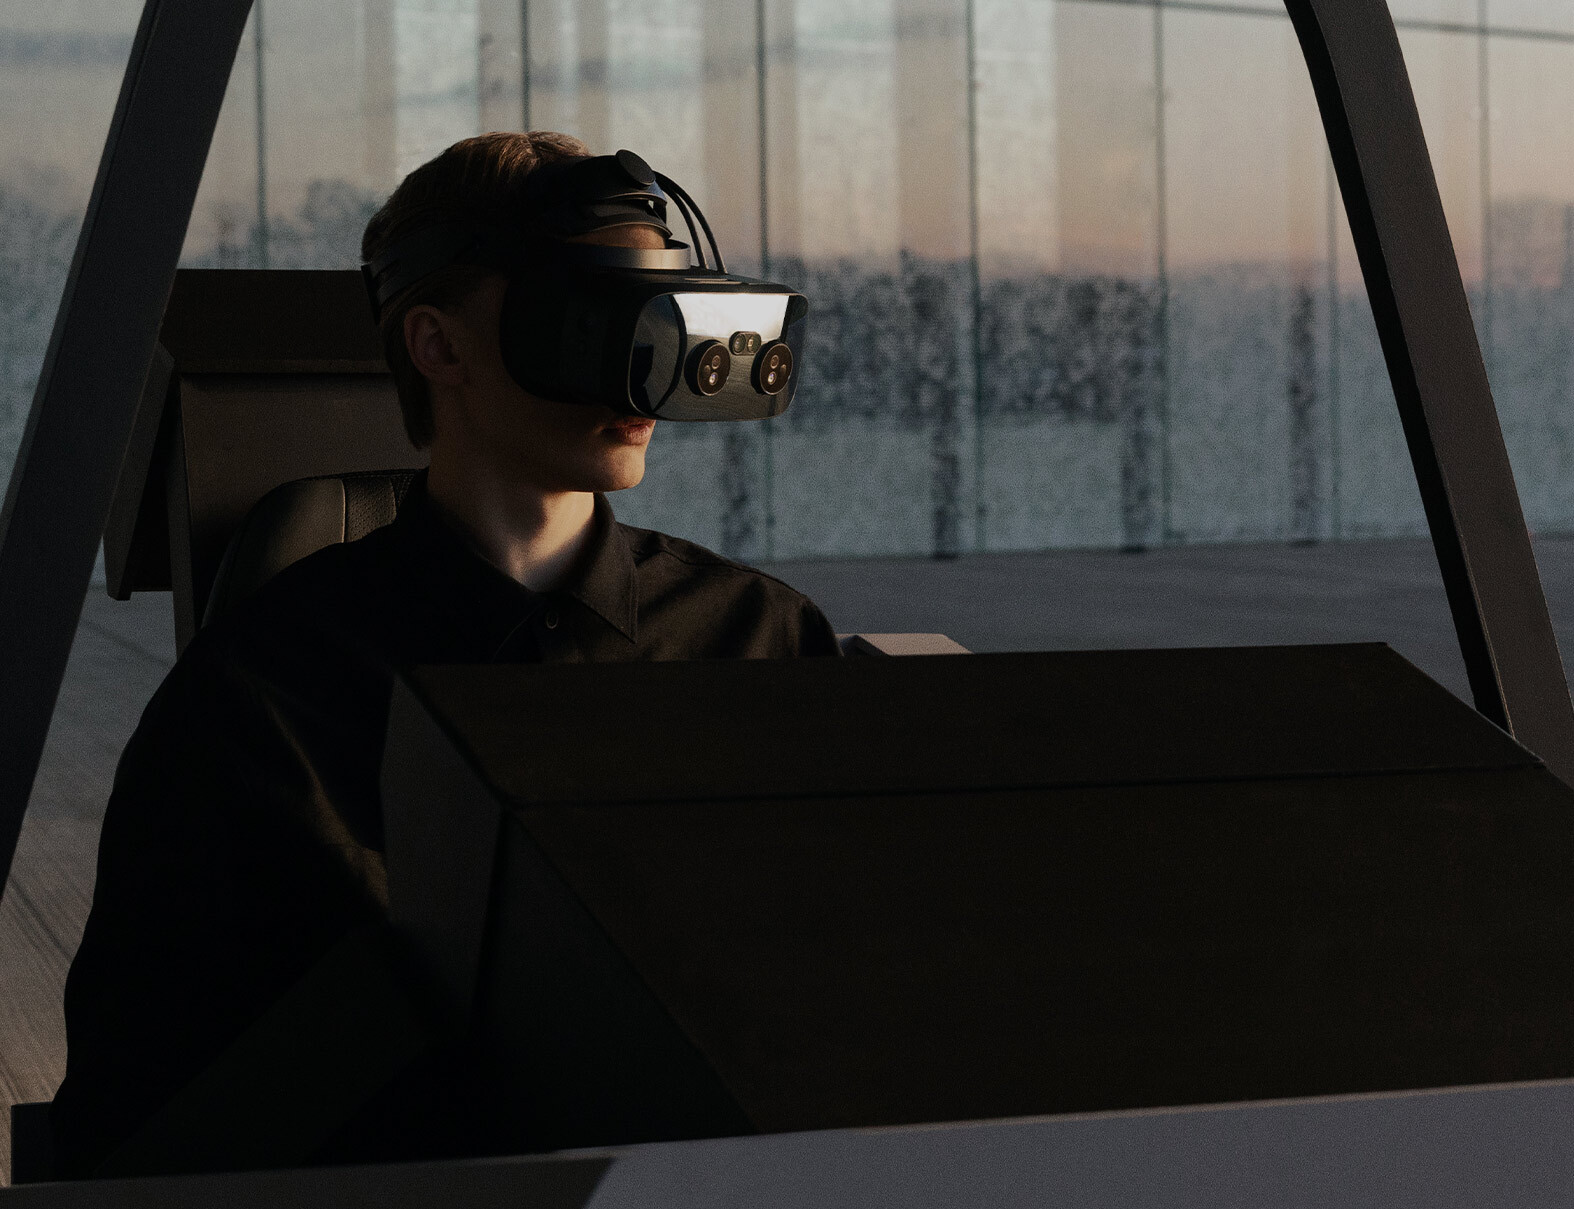 Pilot performance review in virtual reality (VR)